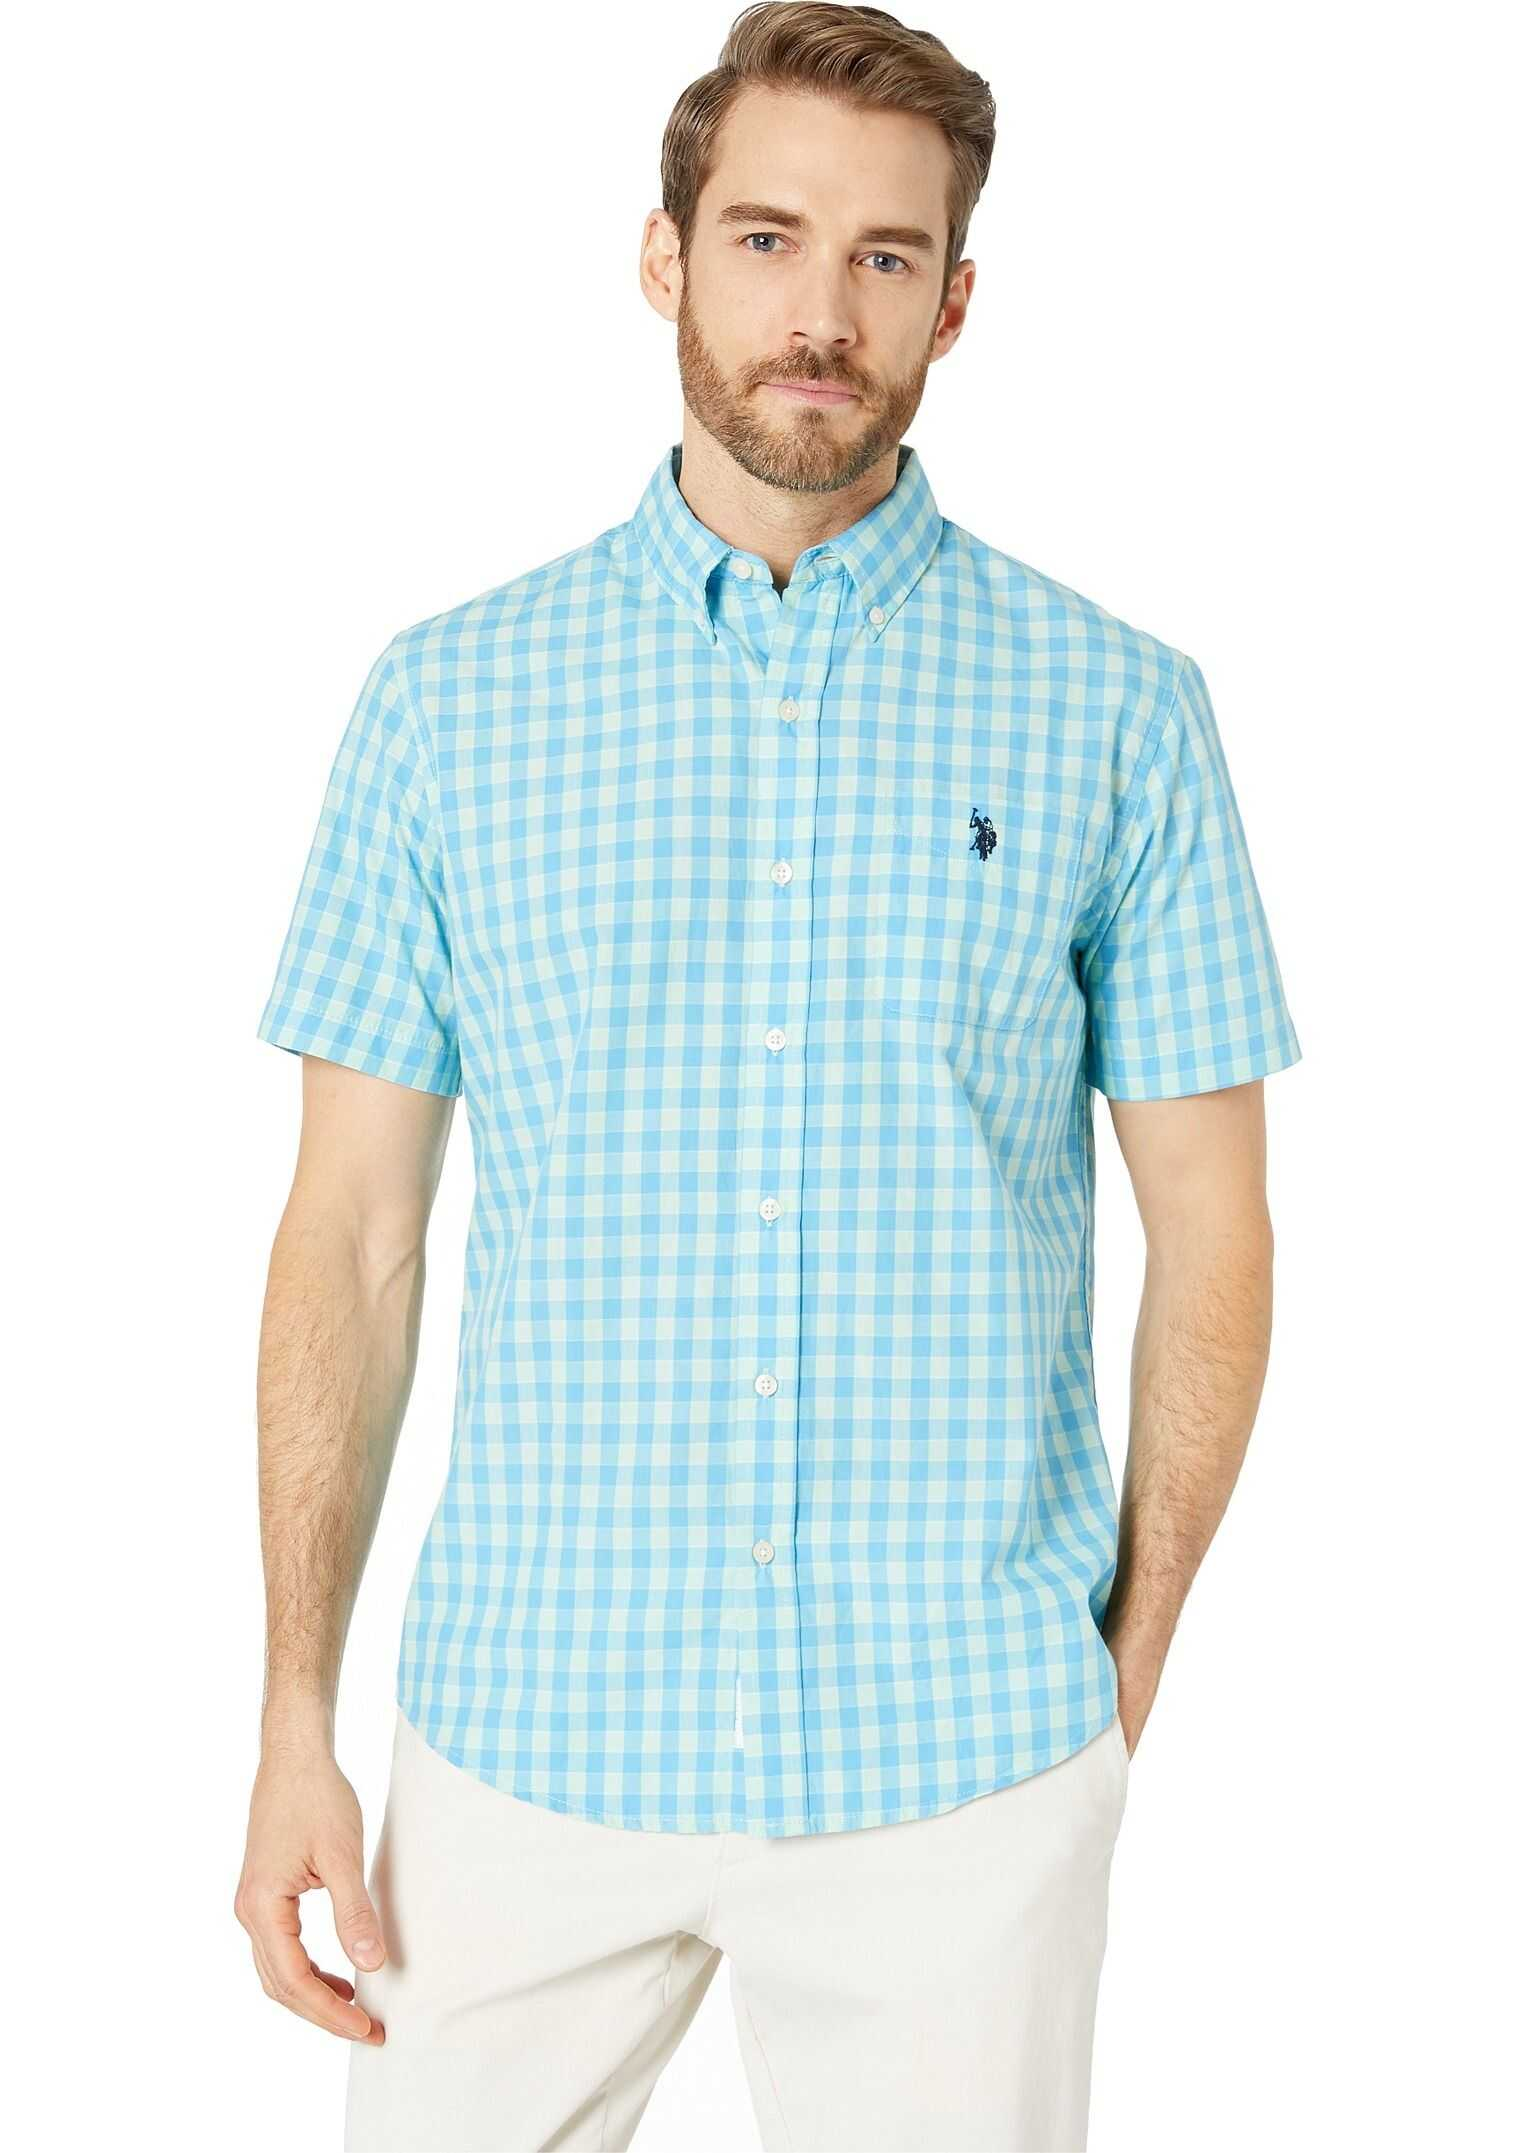 U.S. POLO ASSN. Short Sleeve Medium Check Woven Button Down Coast Azure